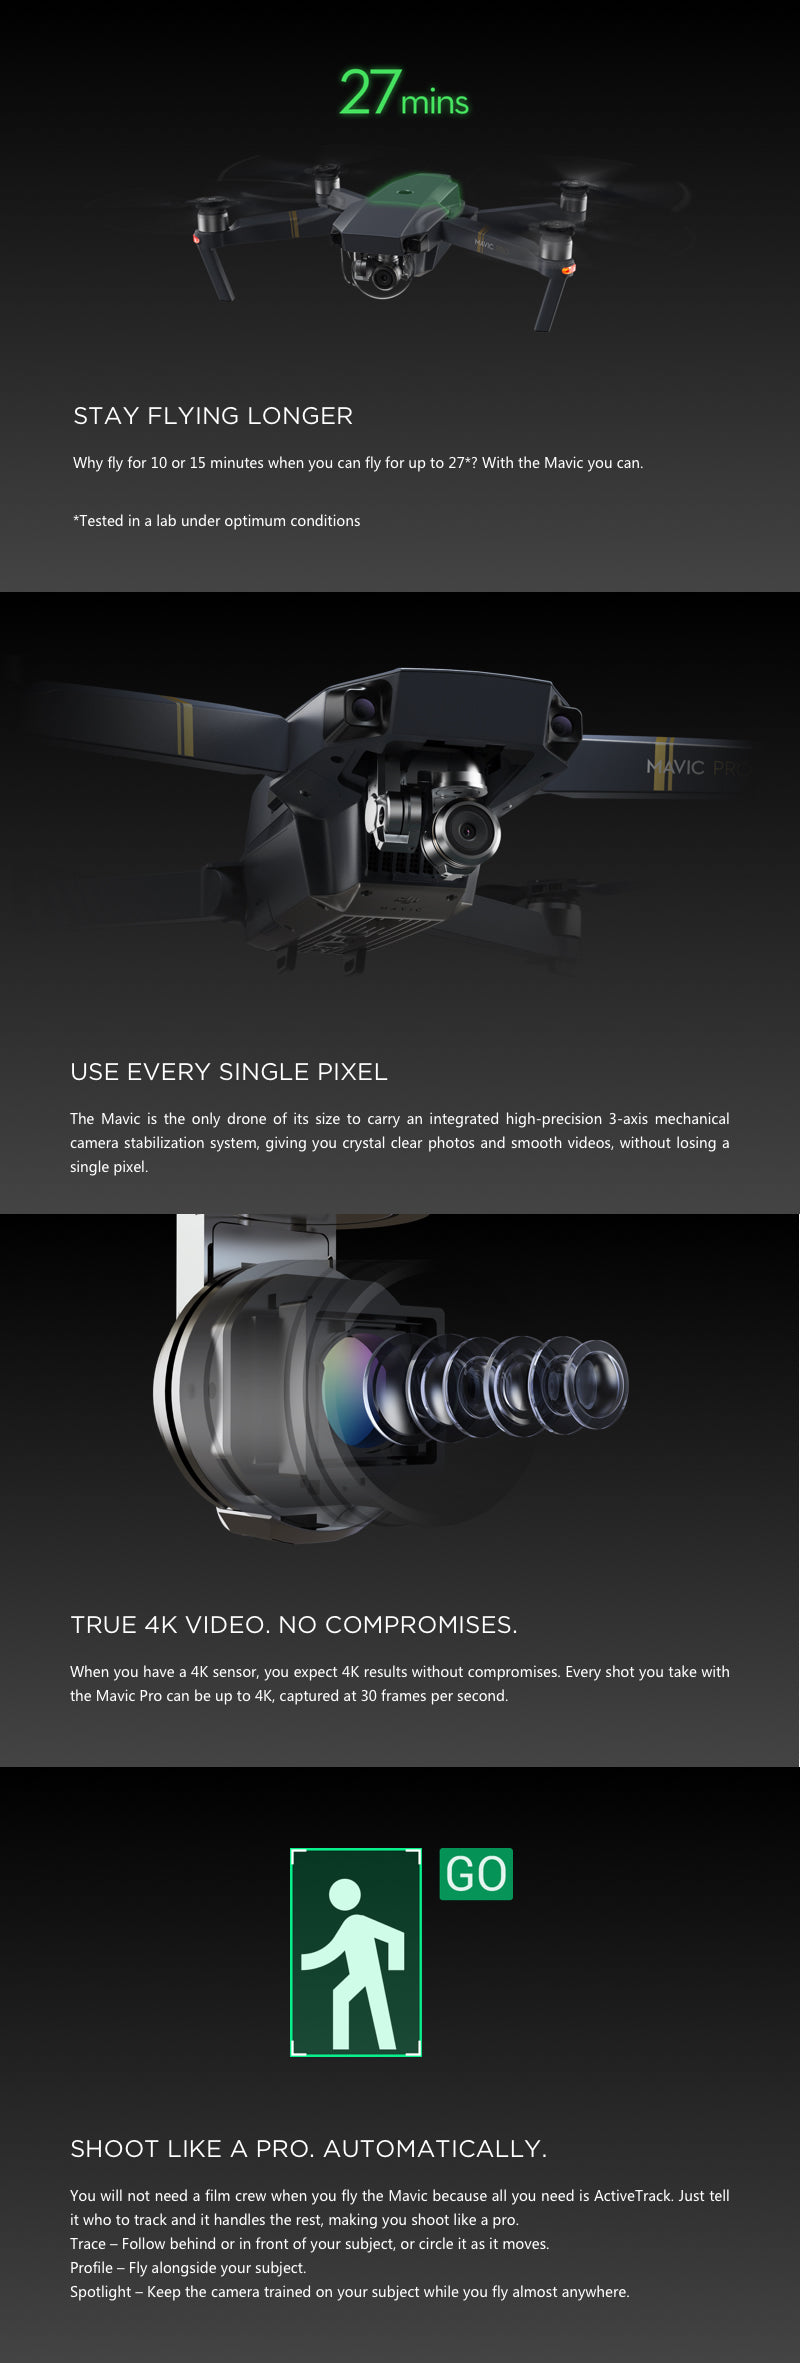 DJI Mavic Pro Description 2